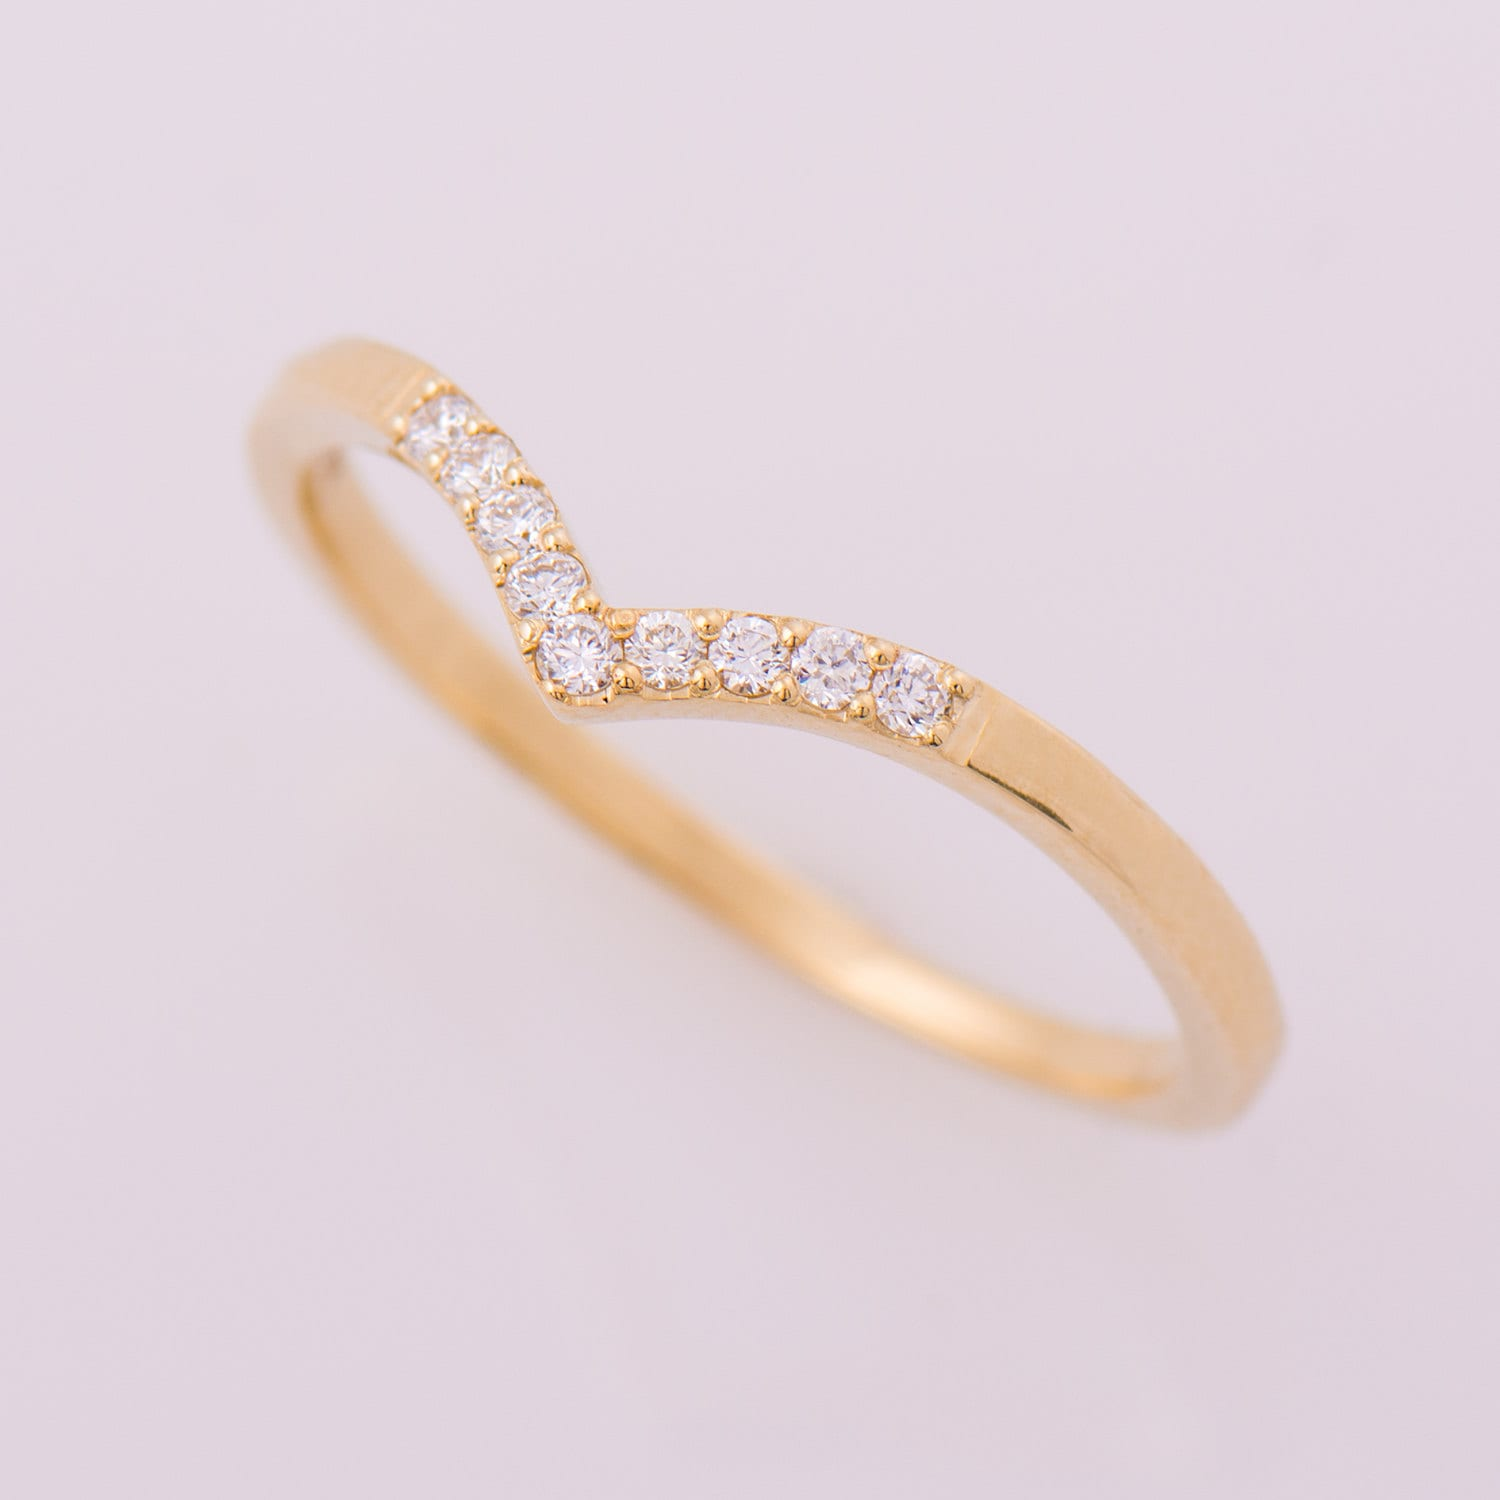 rose rounded prongs style in with product wedding brilliant eternity band half diamond cut gold